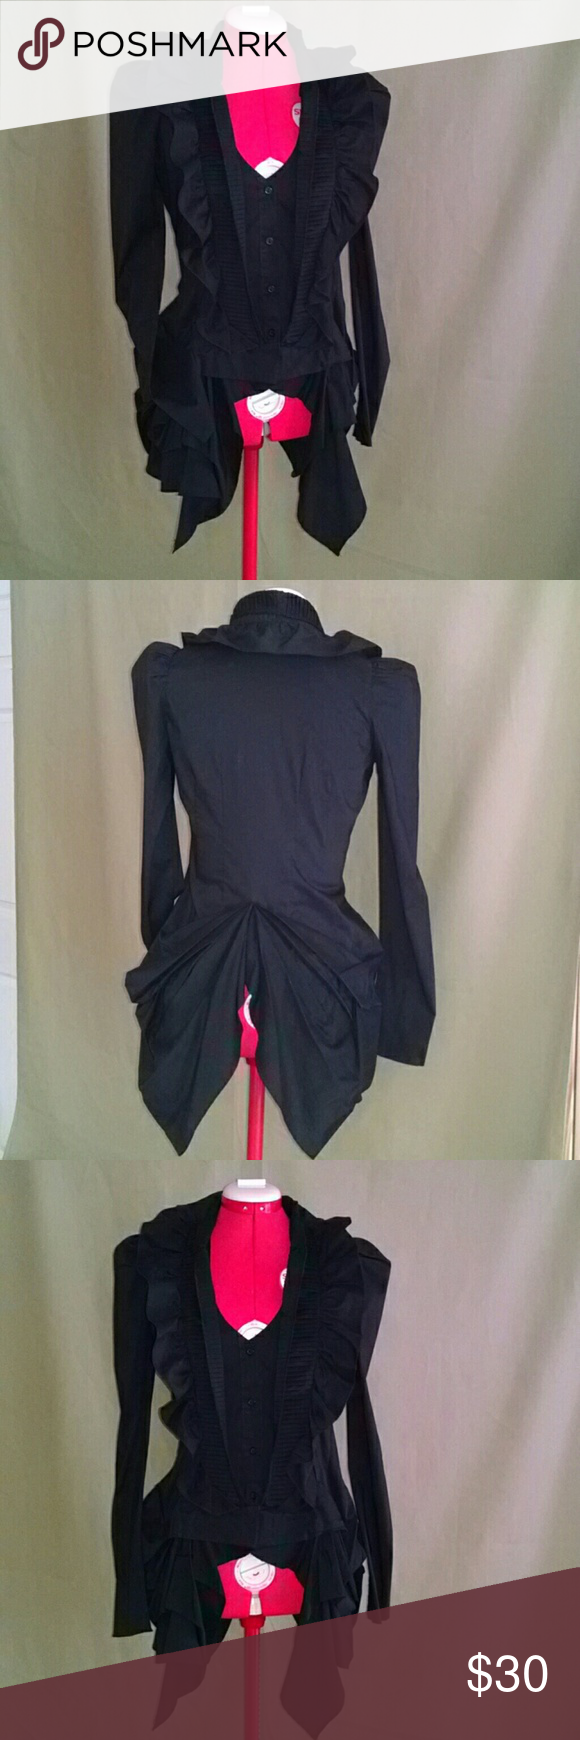 Super unique black top. This really cute unusual long sleeved top is an 80% cotton blend, slightly stretchy. Has vest style button up, with pleated ruffle and then another wavy ruffle, sides are bustle-y gathered and split in the back.  Worn once. It's about a size 2/4. Double Zero Tops